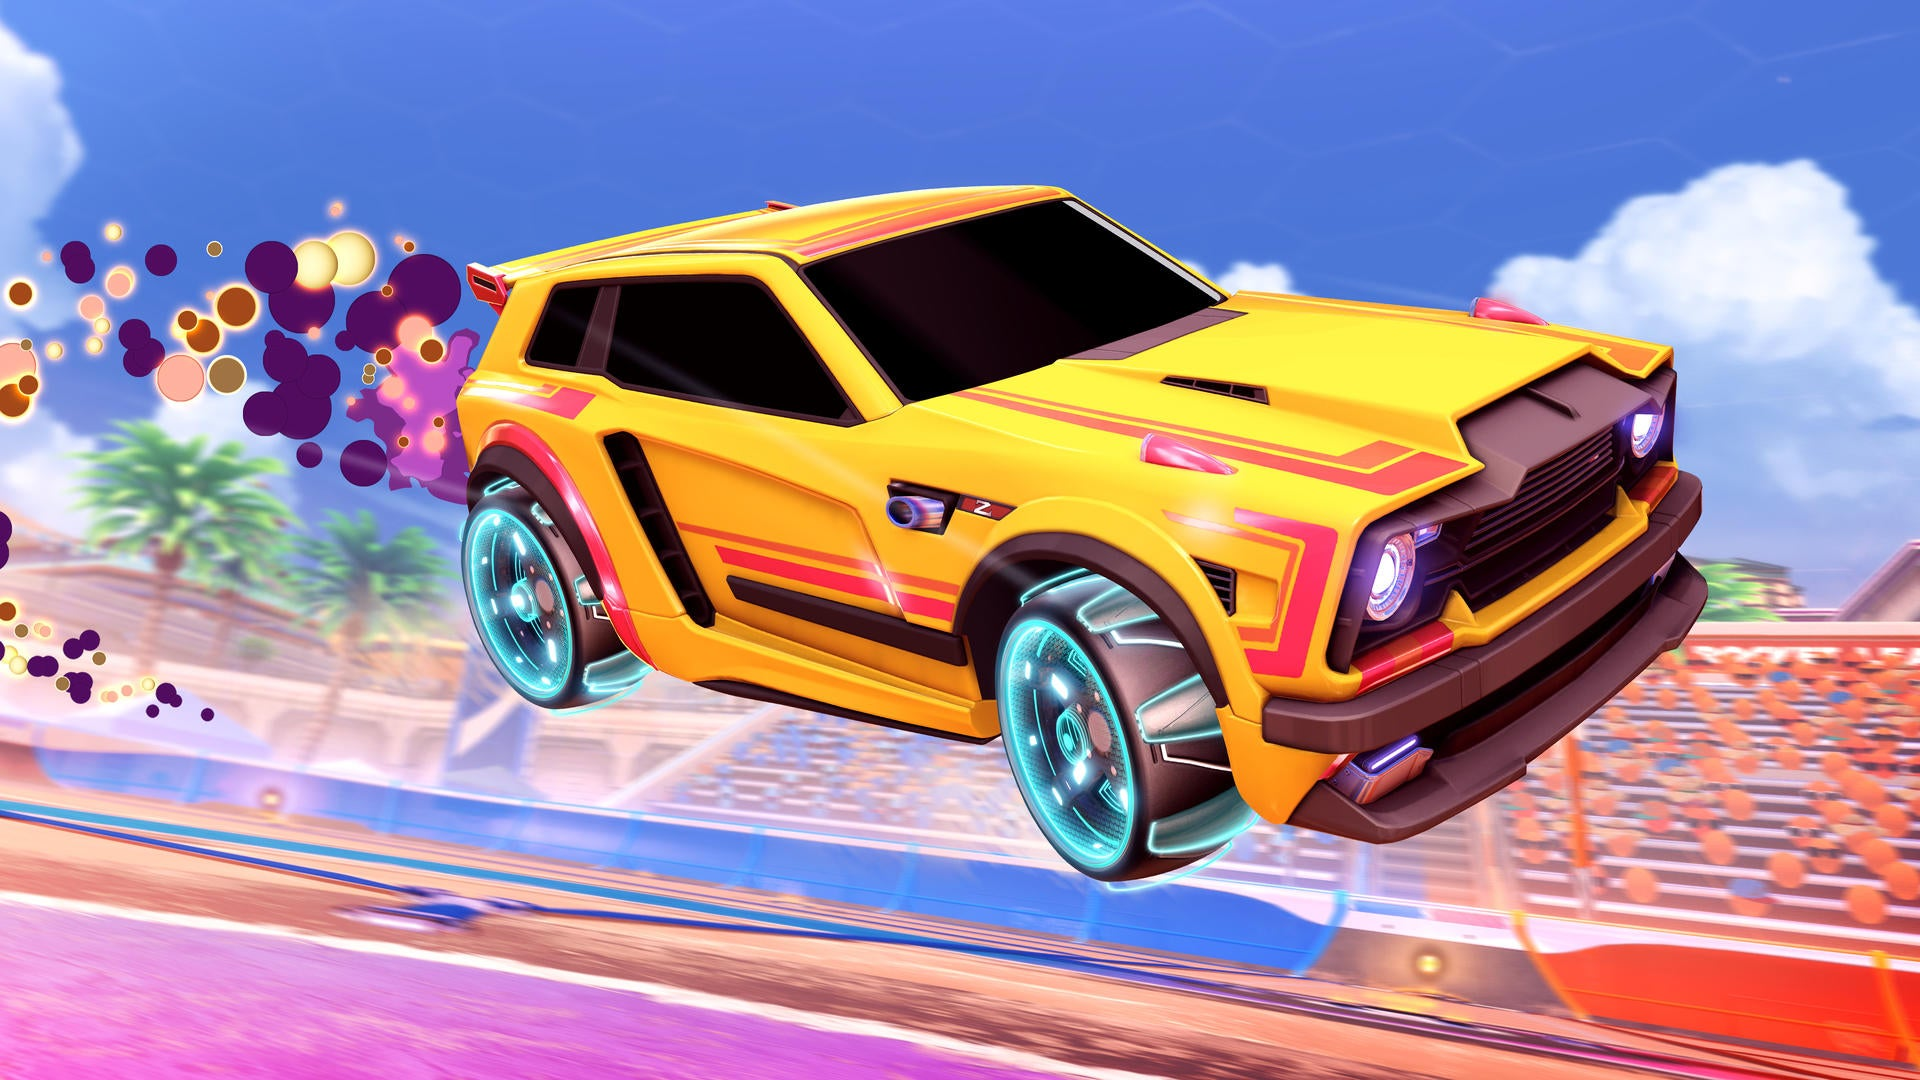 Totally Awesome Crate drops during Radical Summer Image